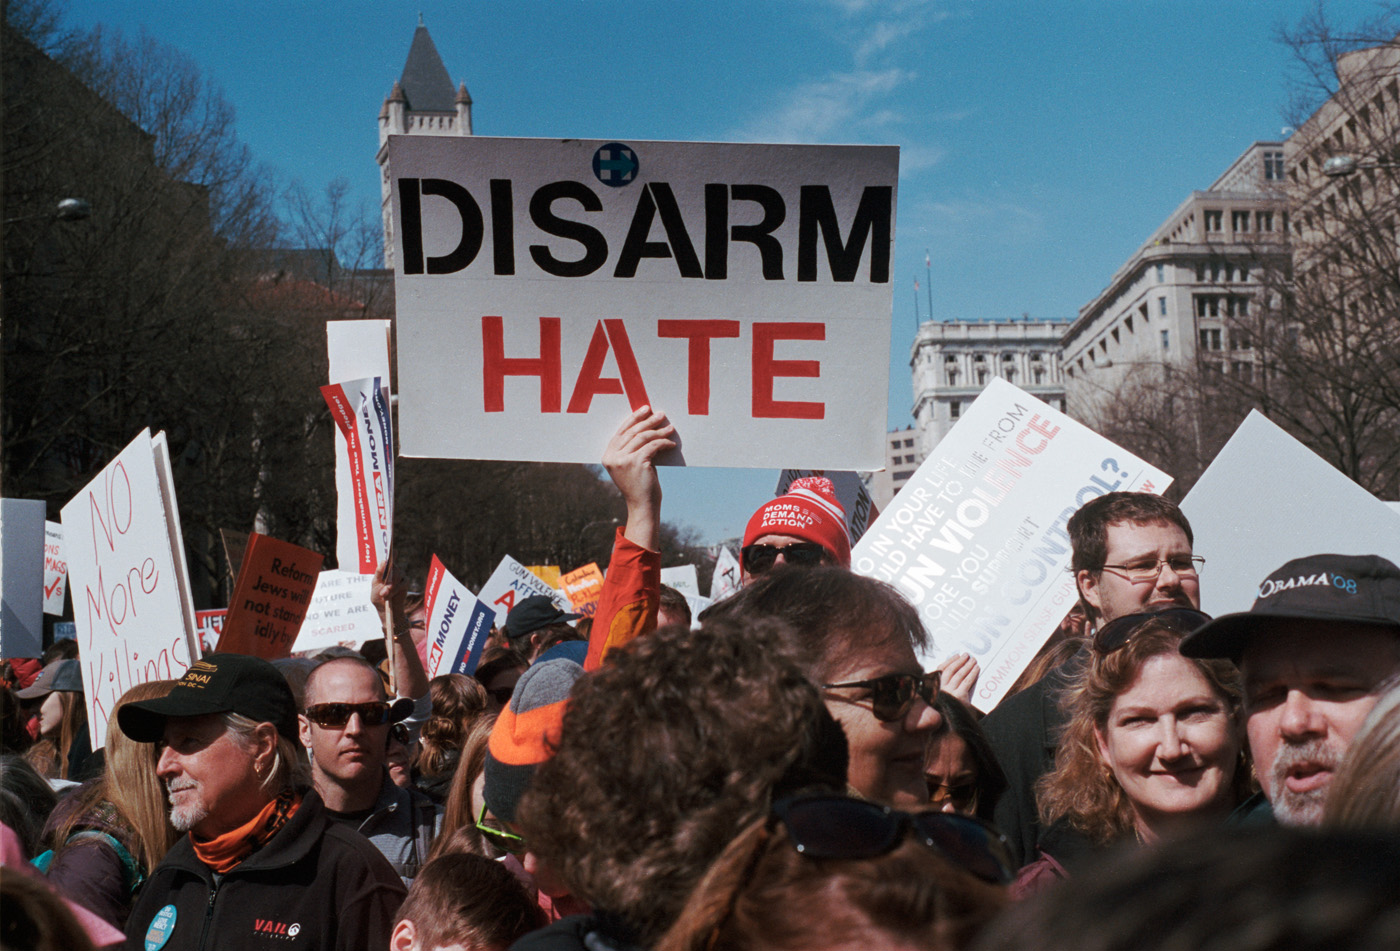 Disarm Hate (March For Our Lives, Washington, D.C.)  |  Frame 34